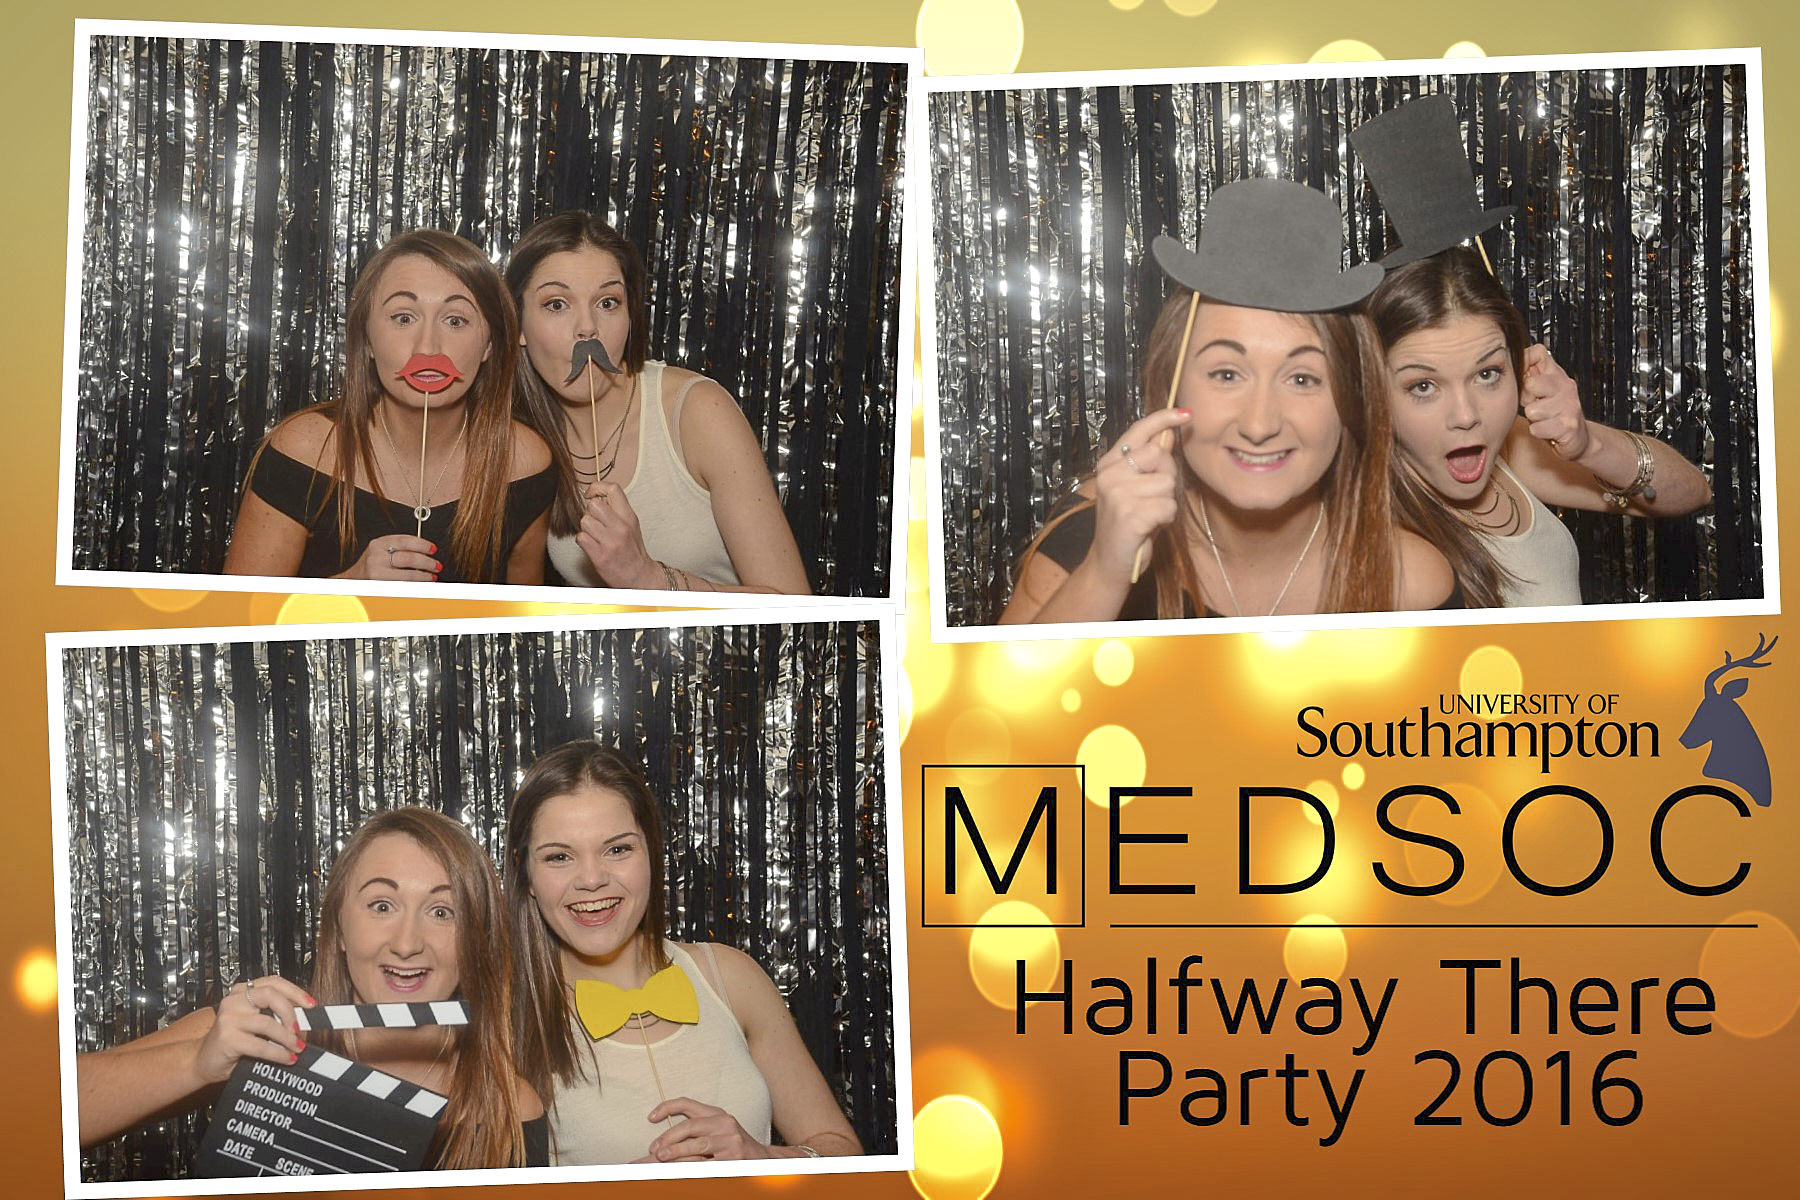 MedSoc Halfway There Party 2016 DS201413.jpg